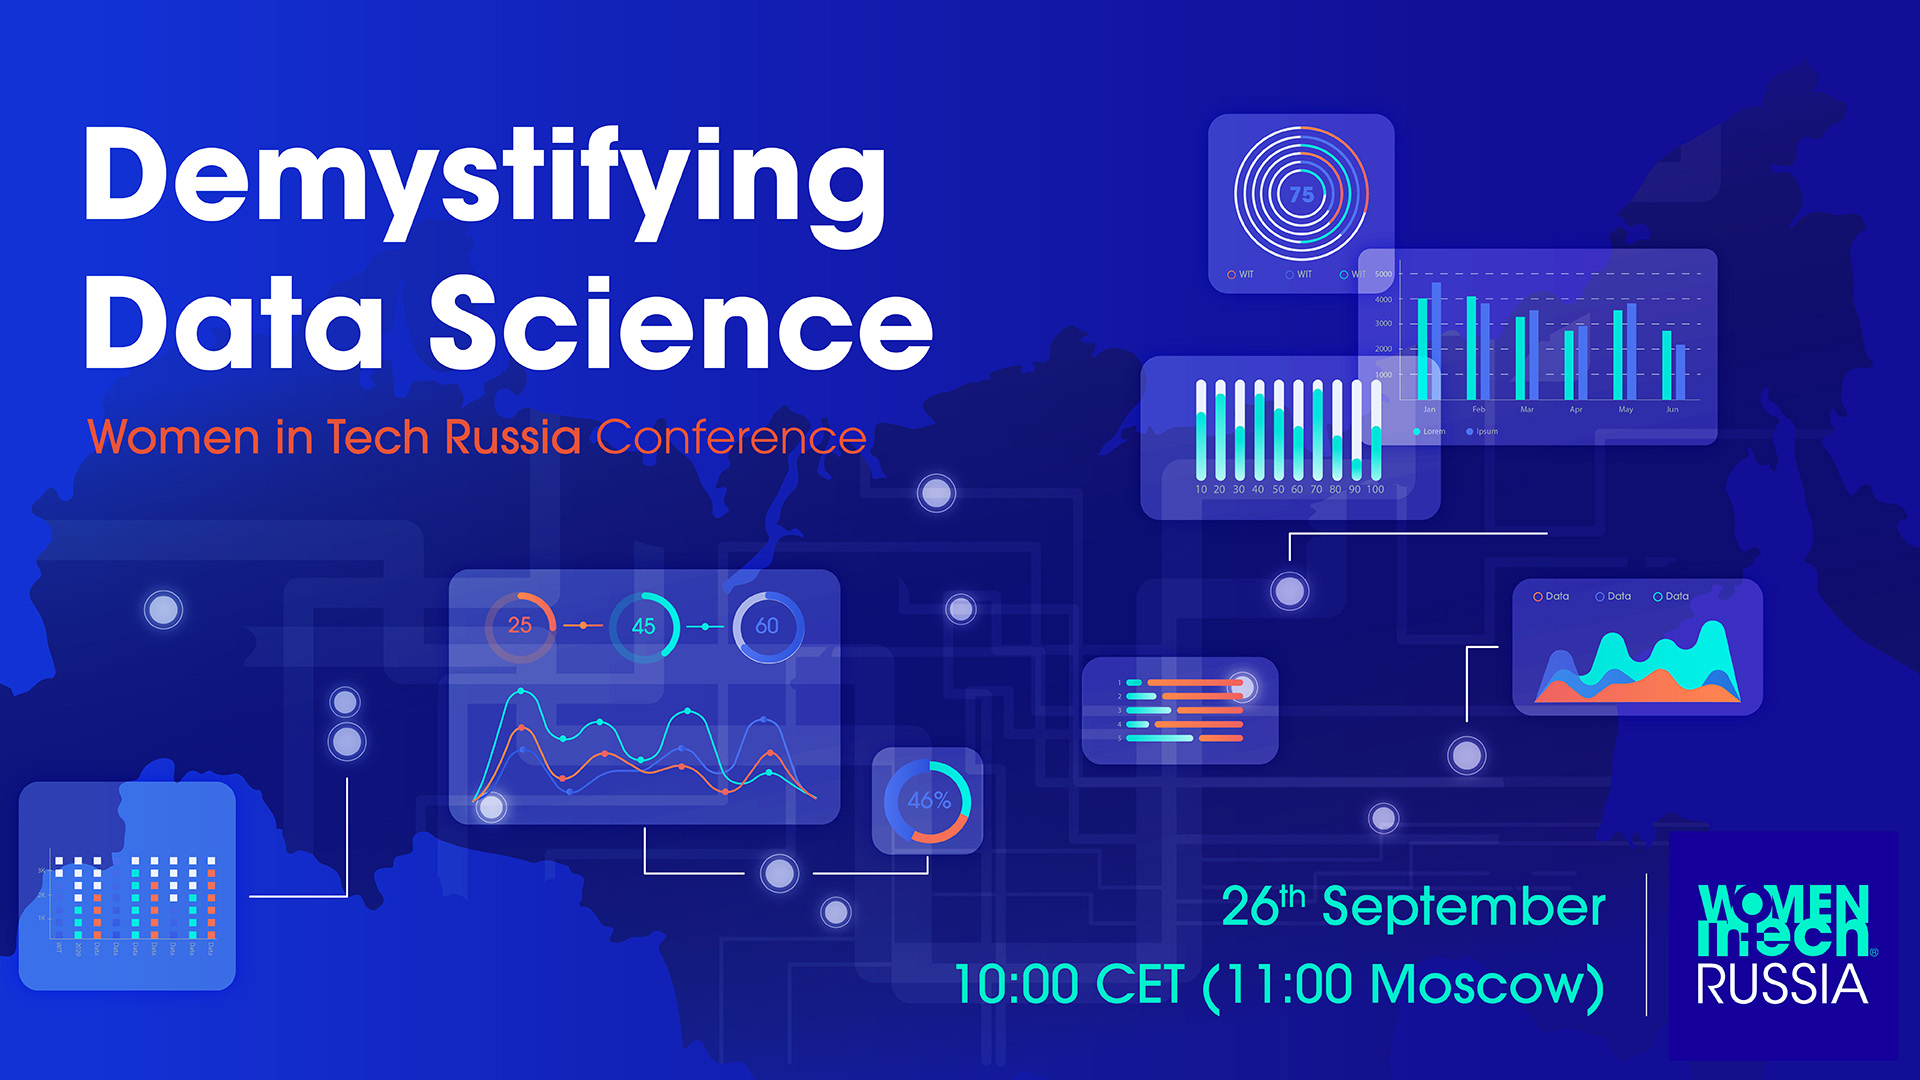 WiT Demystifying Data Science Conference 2020